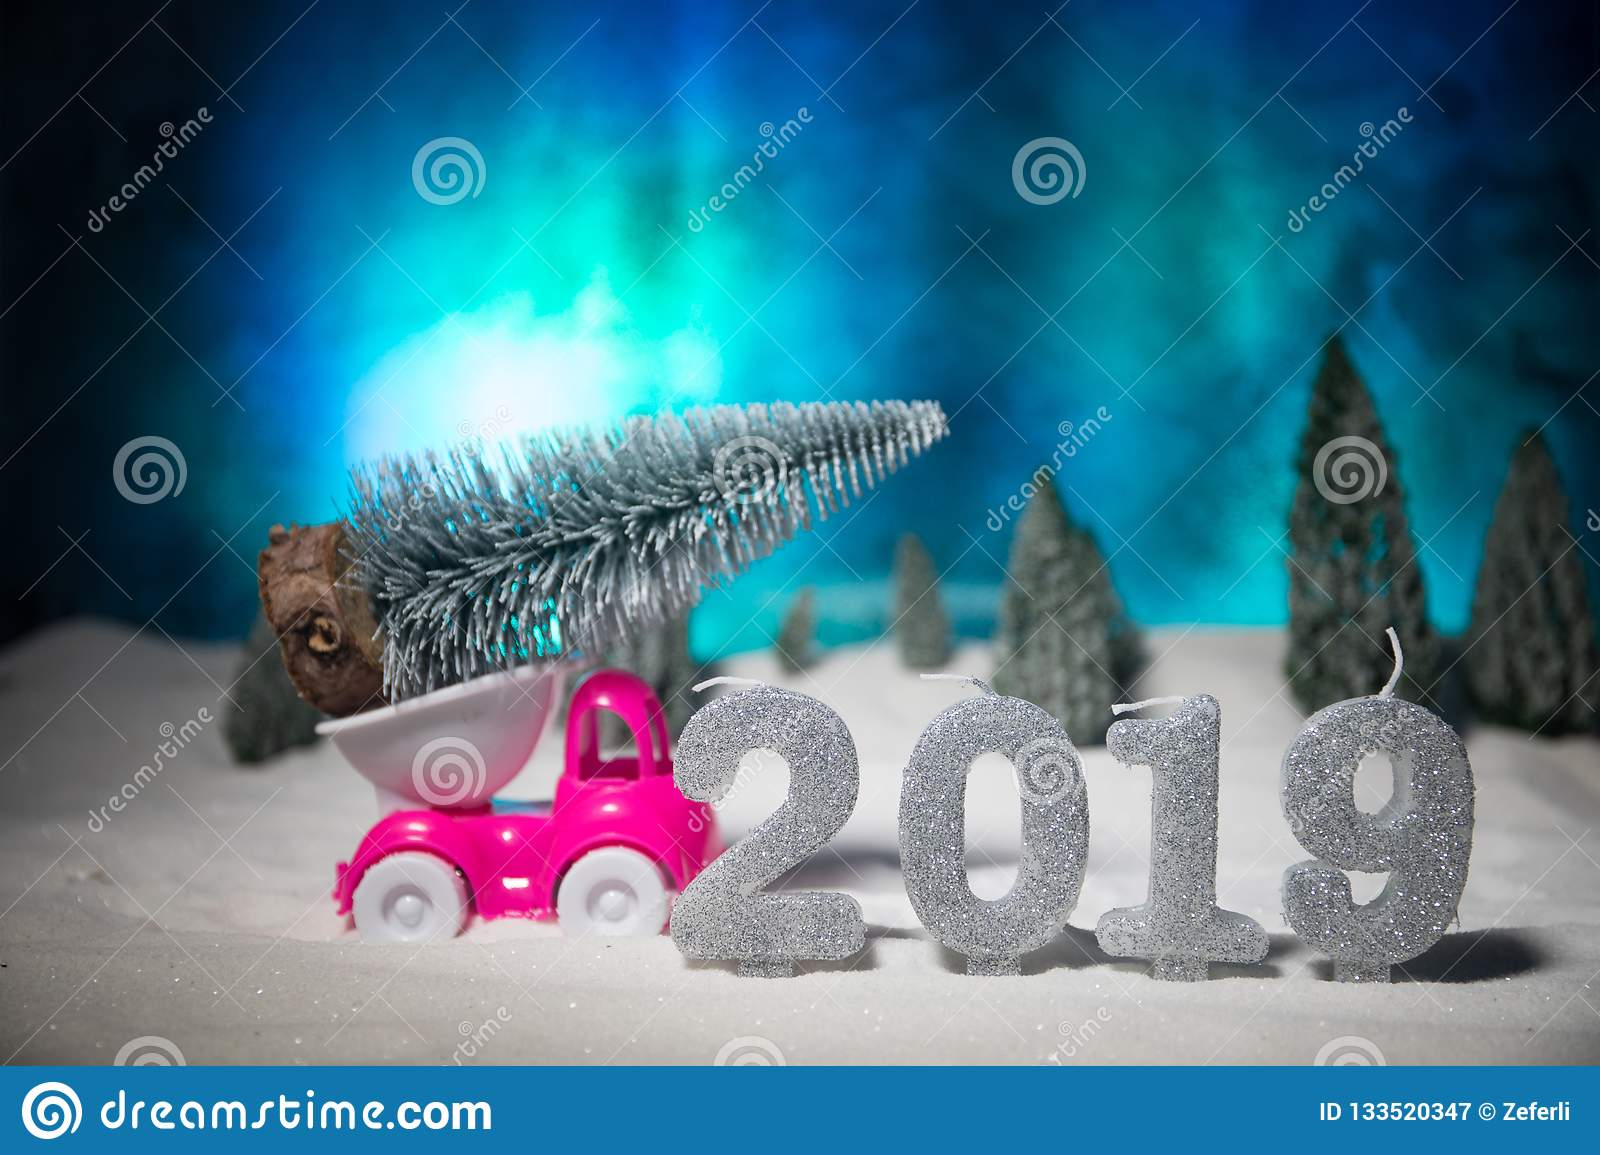 Christmas or New Year concept. Toy car carrying a Christmas tree through the forest in snowfall. Holiday decorated background